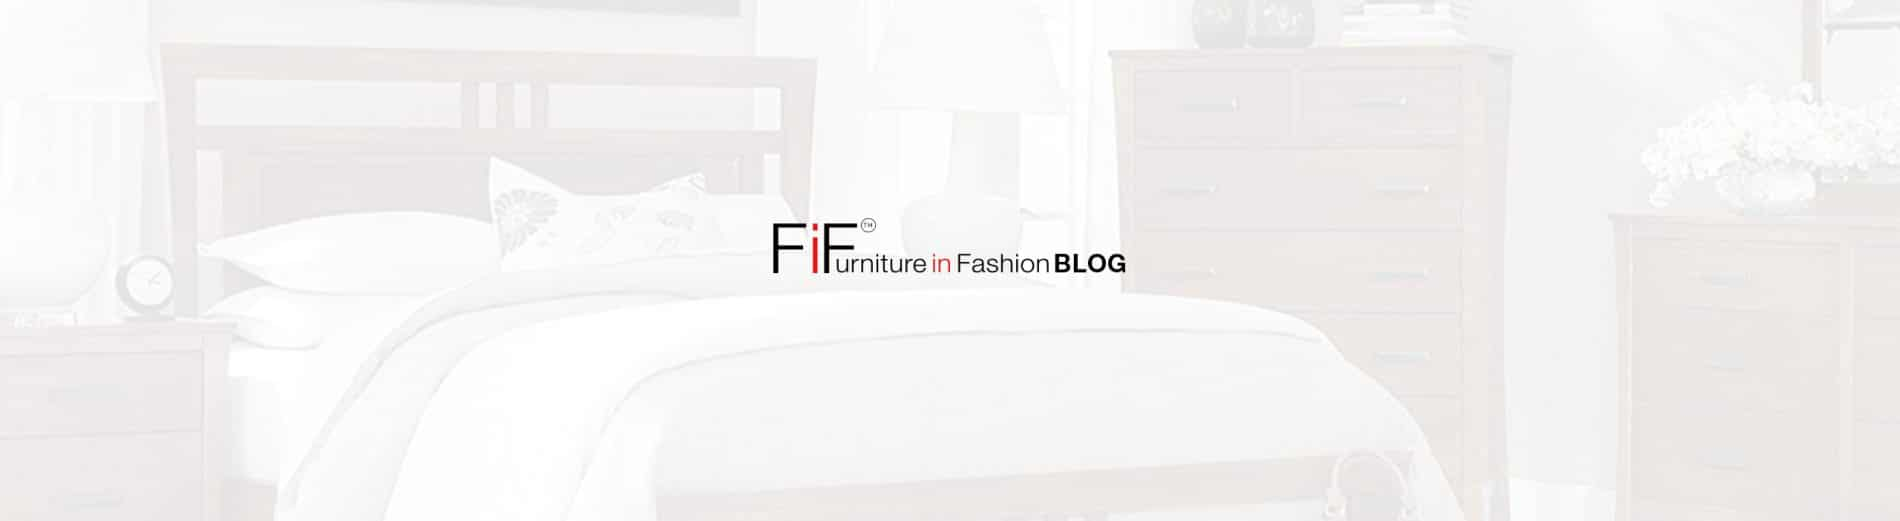 FIF Blog H 1900x521 - University Furniture Requirements and Specifications